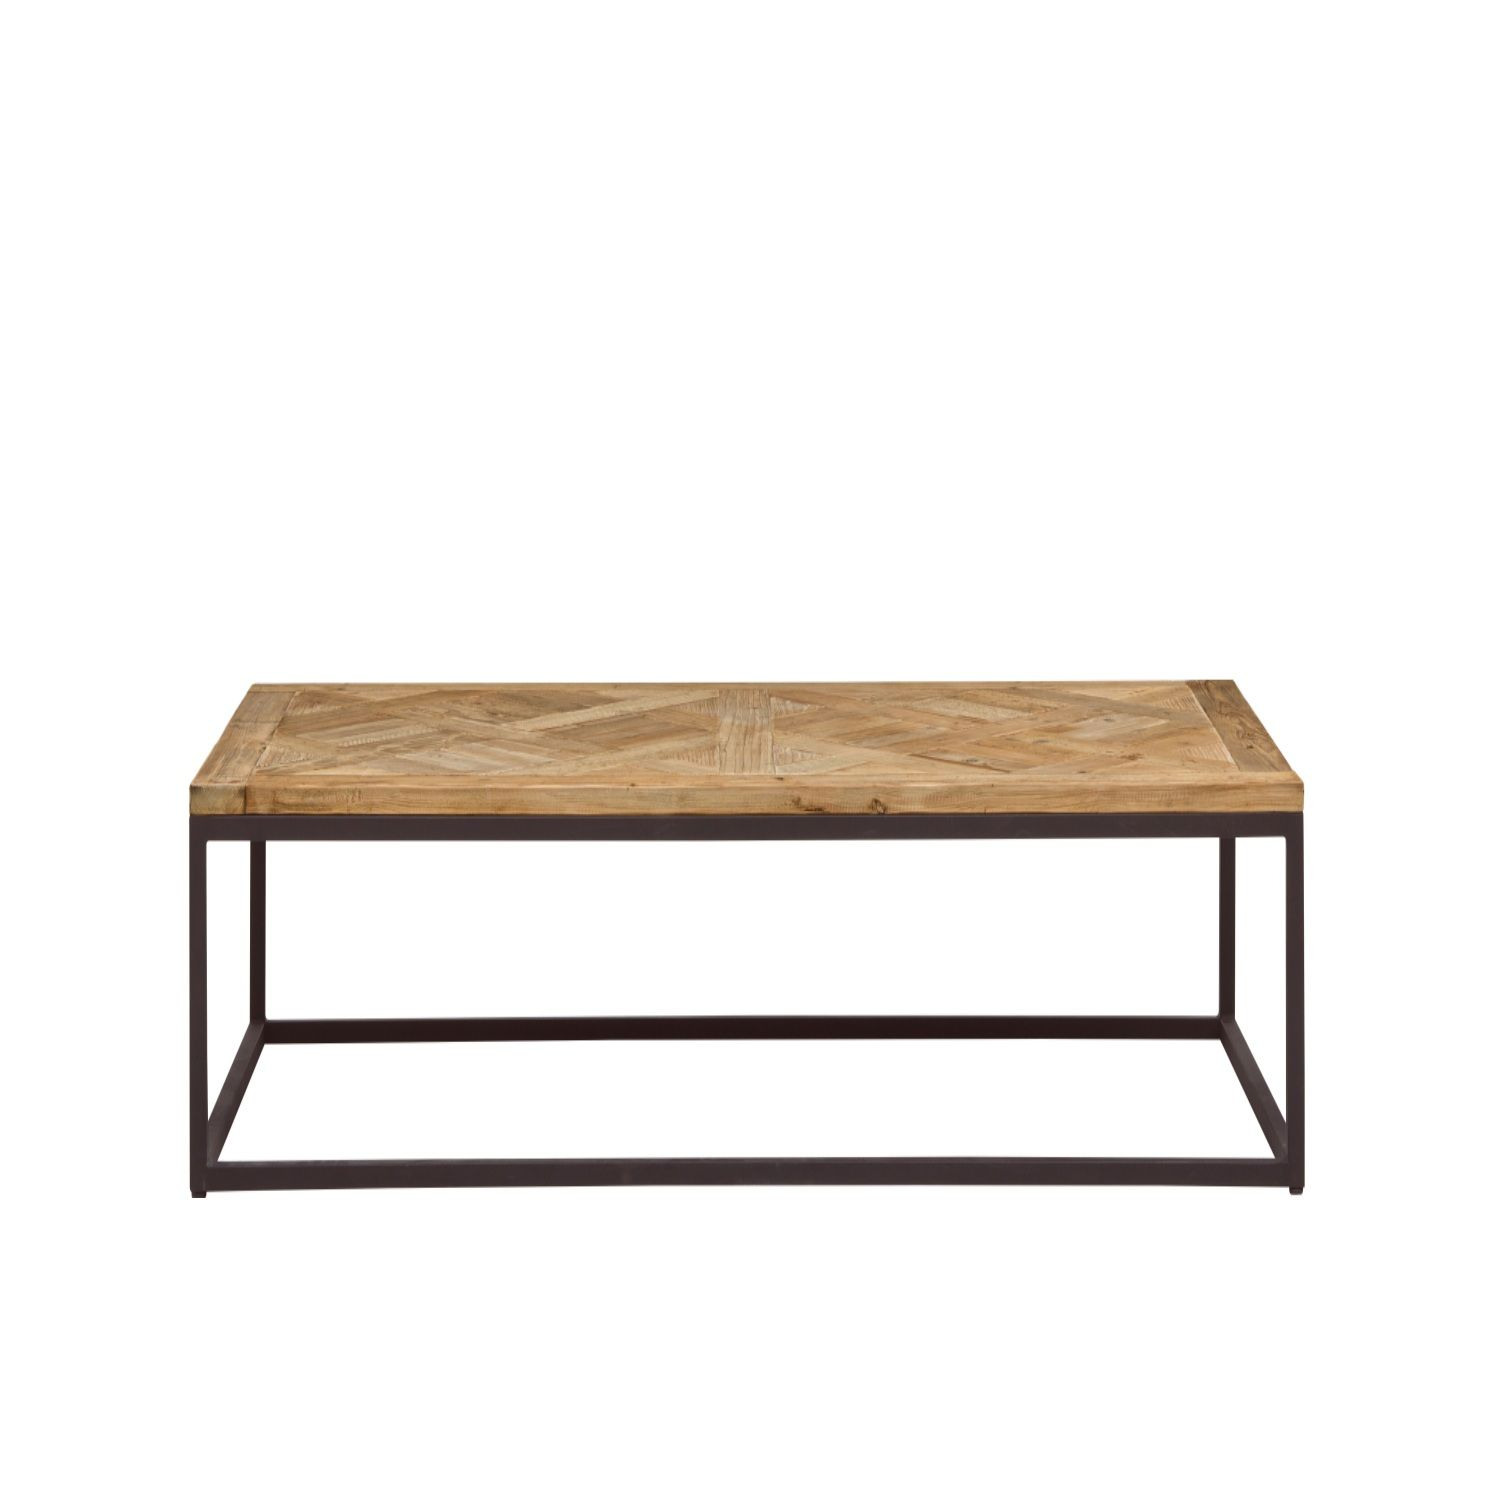 Parquet coffee table from domayne online coffee table parquet coffee table from domayne online geotapseo Choice Image